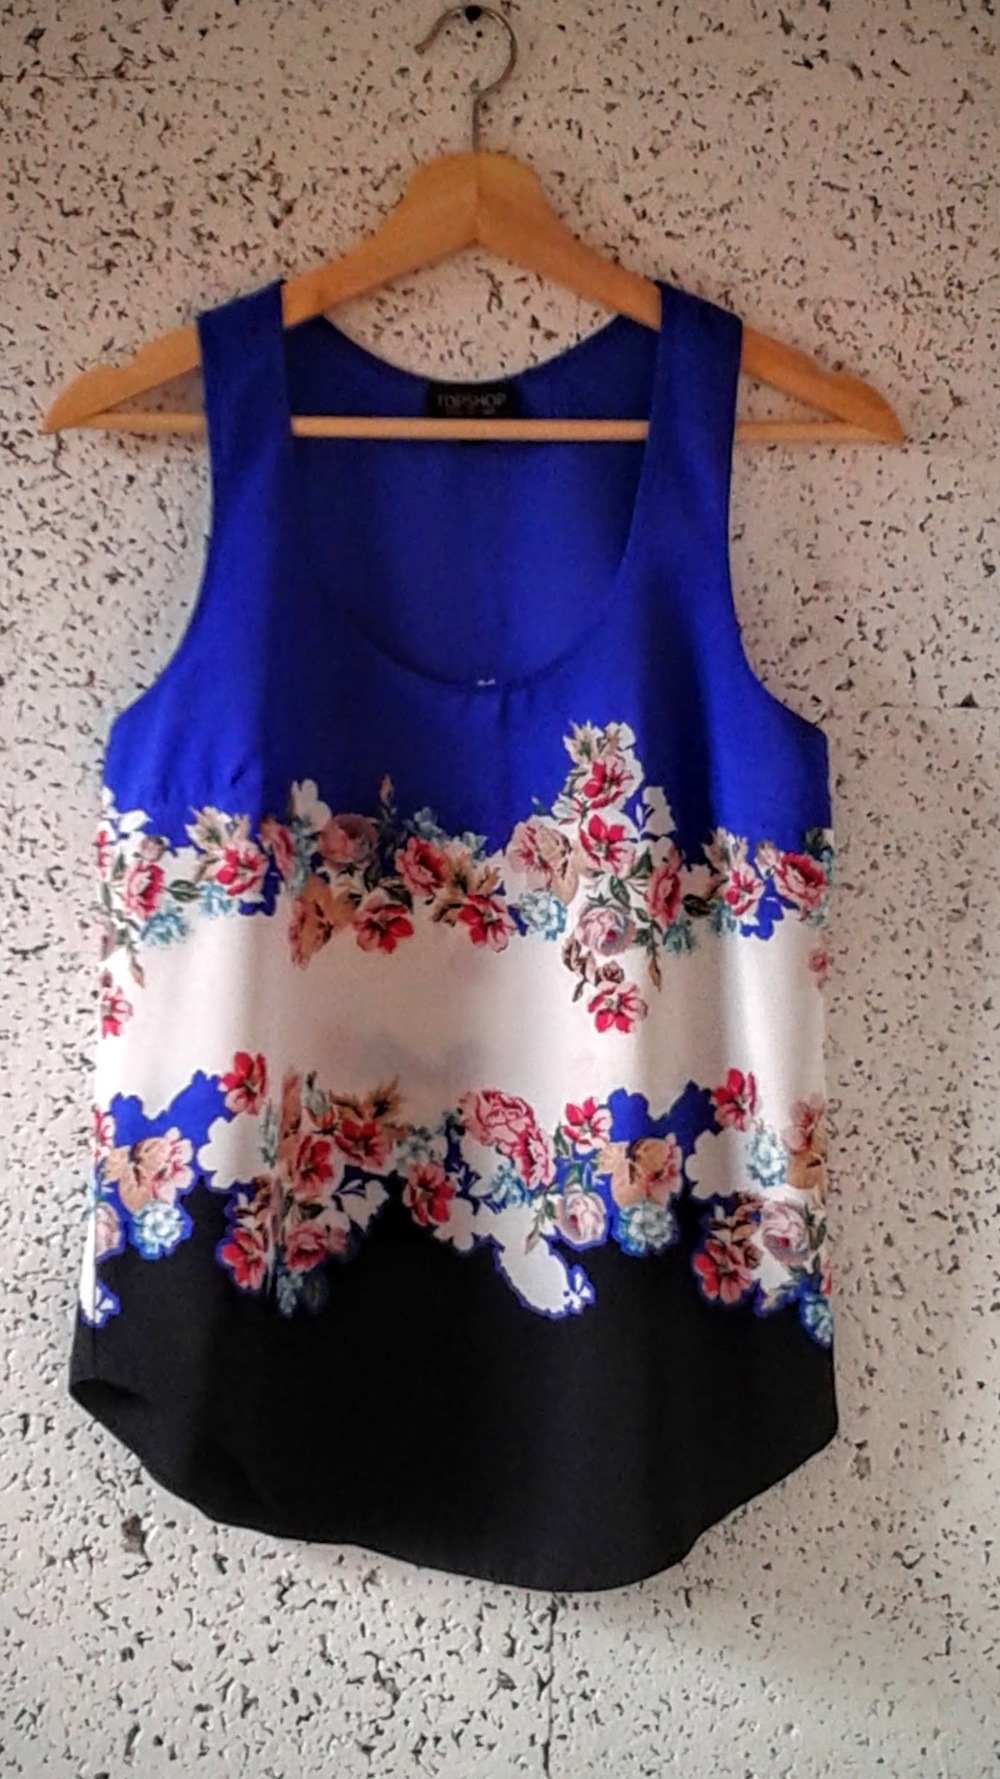 Top Shop top; Size M, $24